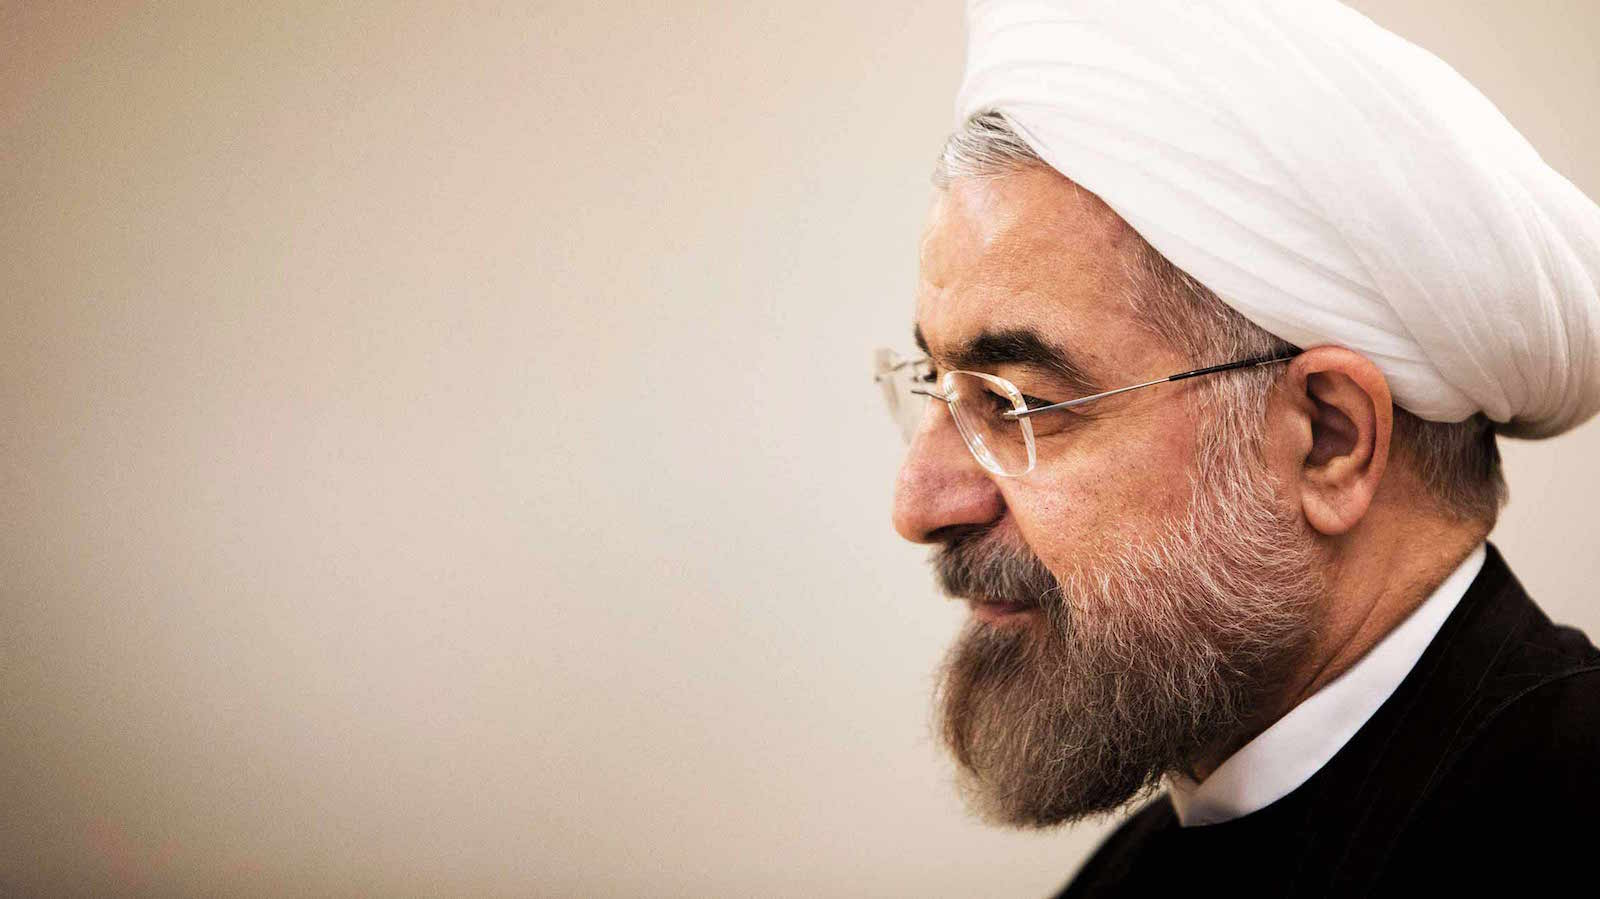 Hassan Rouhani is an Iranian politician serving as the current and seventh President of Iran since 3 August 2013 - Image AP